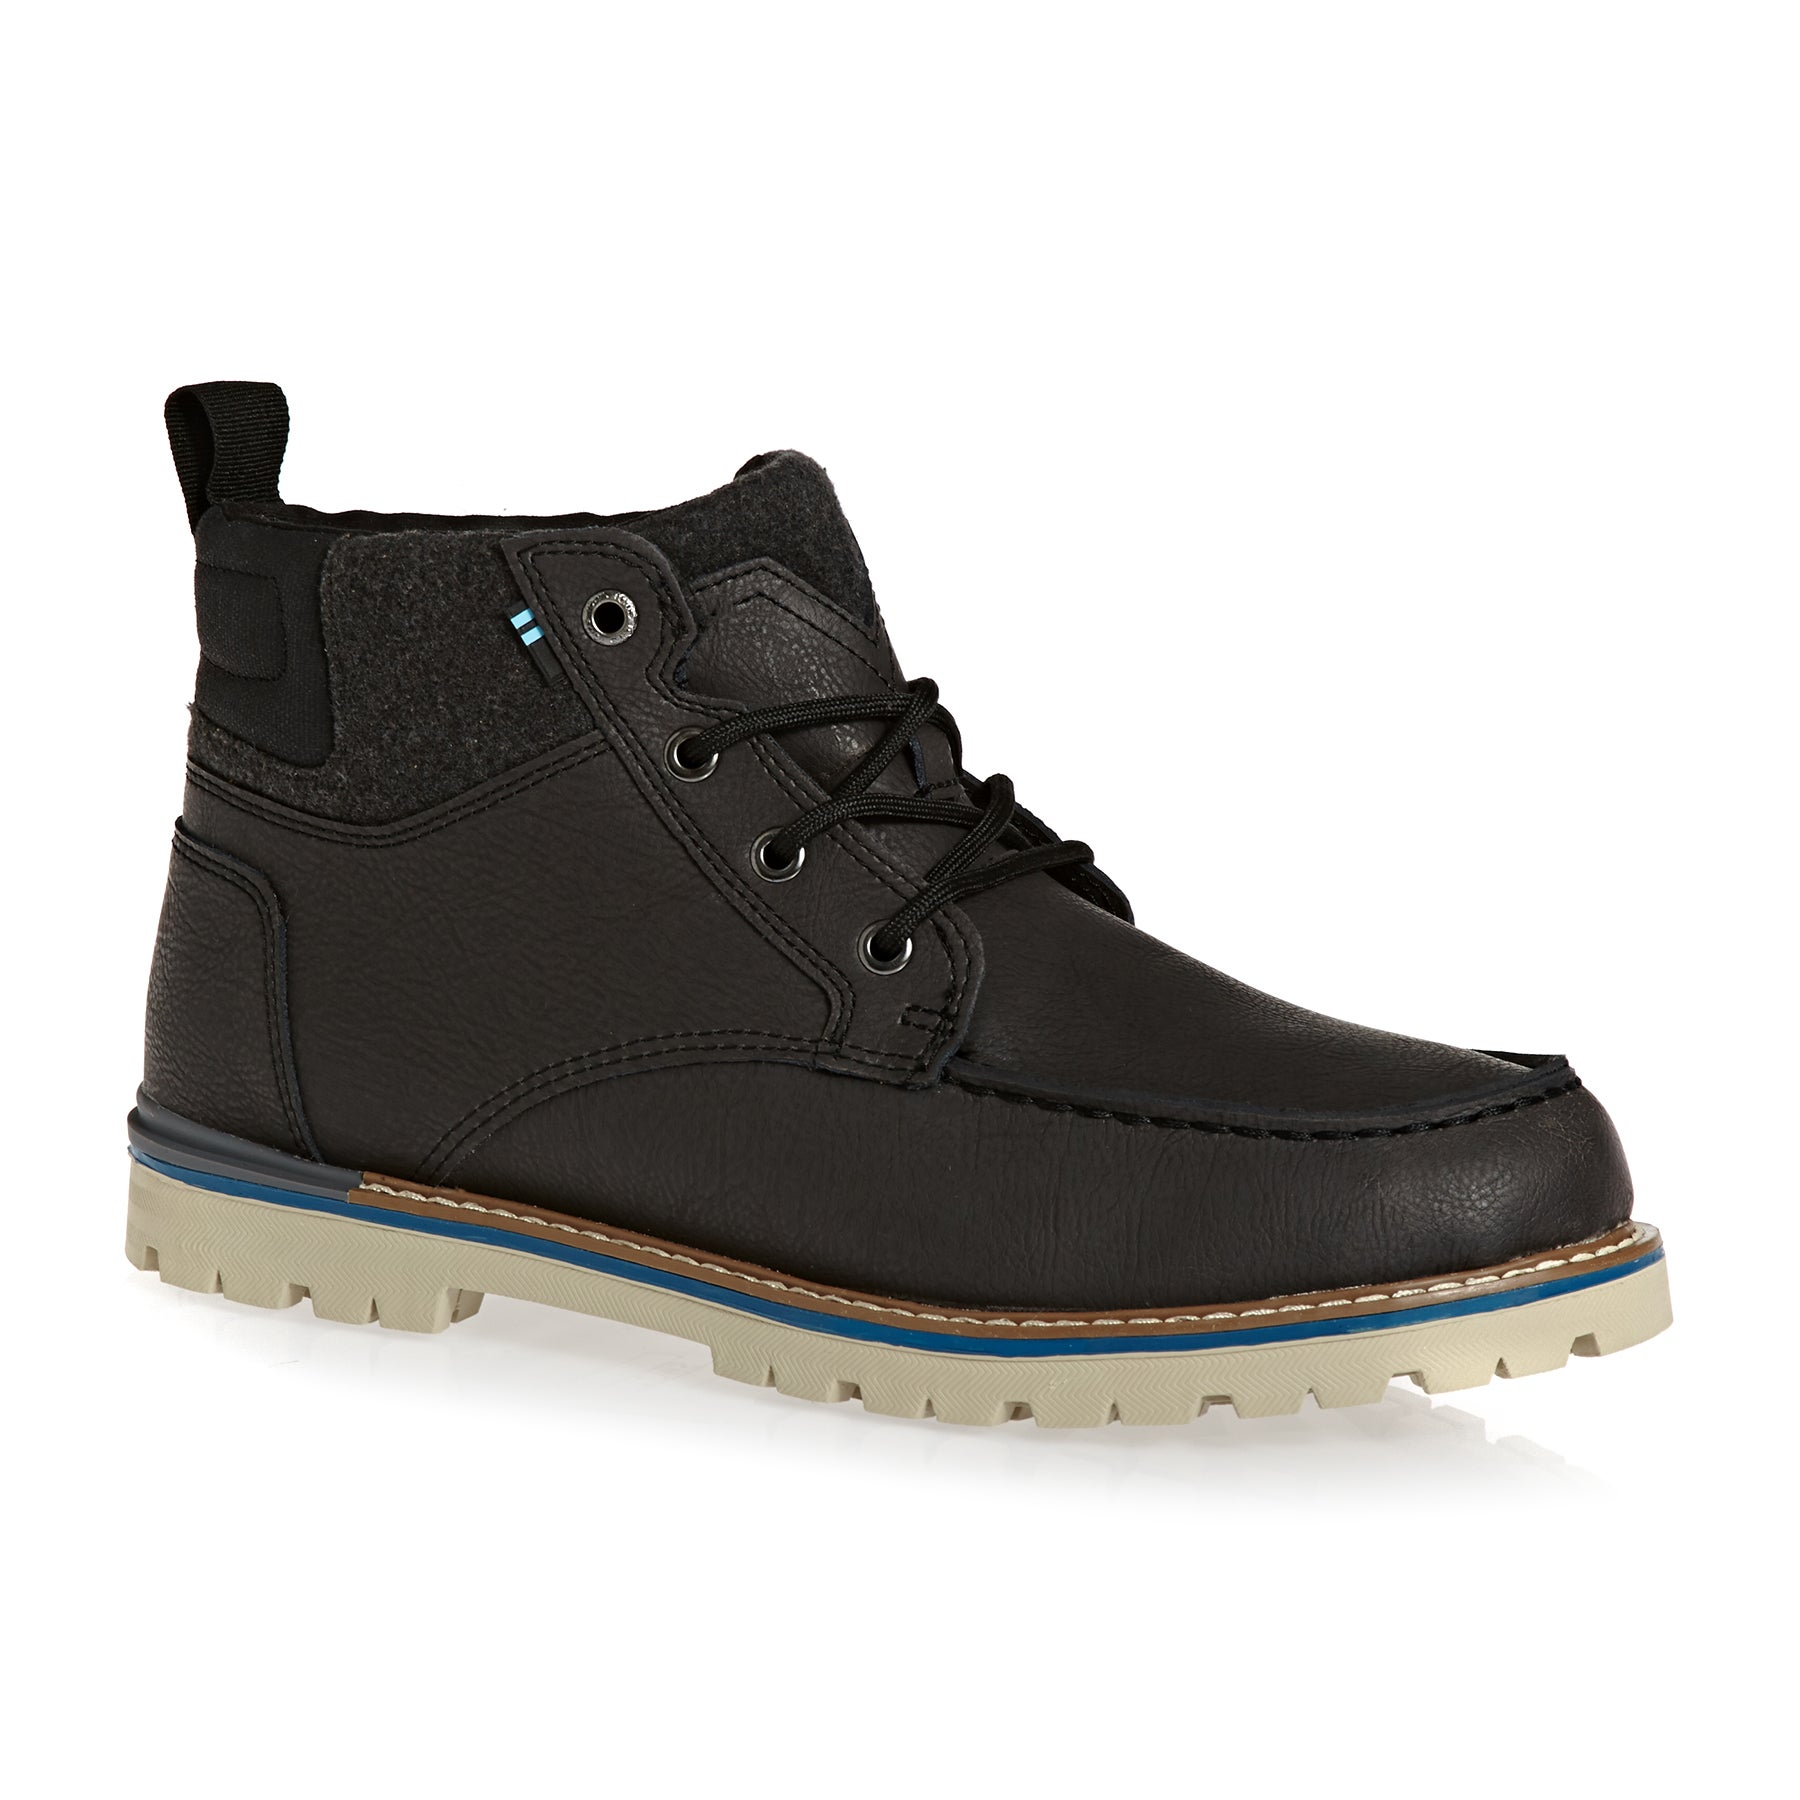 Toms Hawthorne Waterproof Boots - Forged Iron Grey